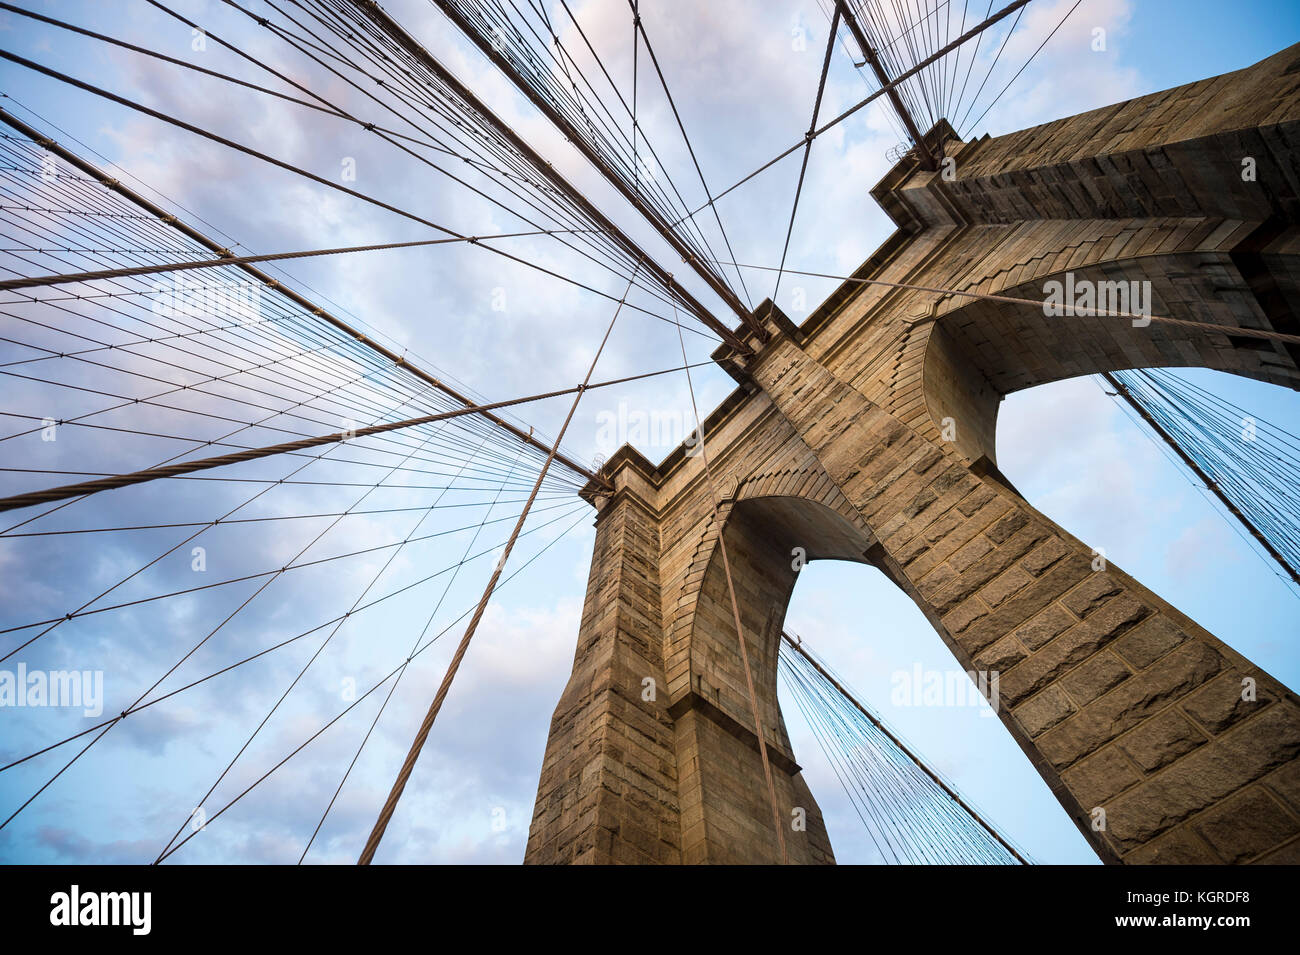 Architectural close-up detail of the landmark Brooklyn Bridge in New York City with its iconic steel cables making - Stock Image